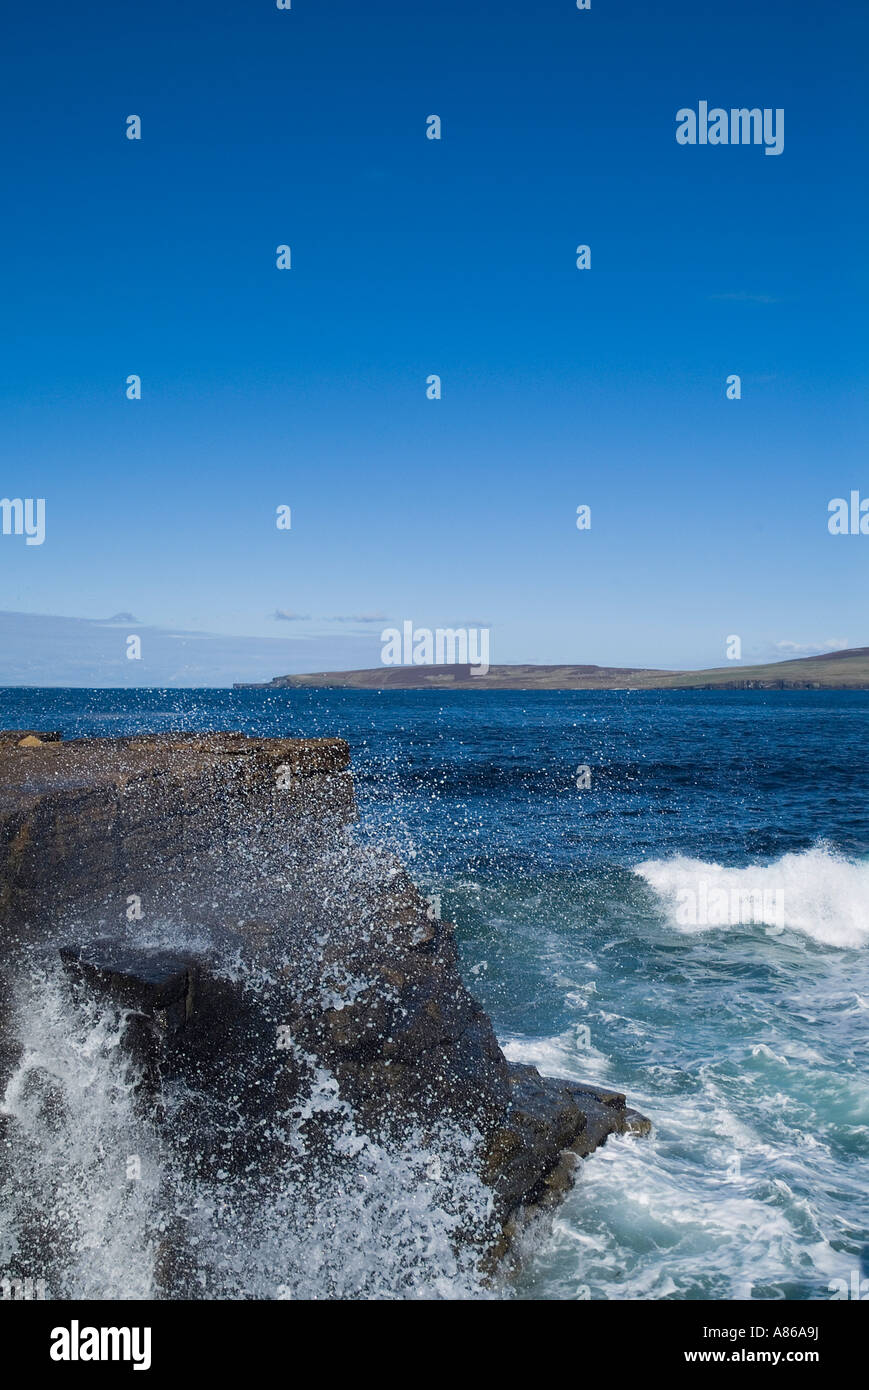 dh Eynhallow Sound EVIE ORKNEY Rolling waves splashing ashore seacliff blue sea and Rousay island coast Stock Photo